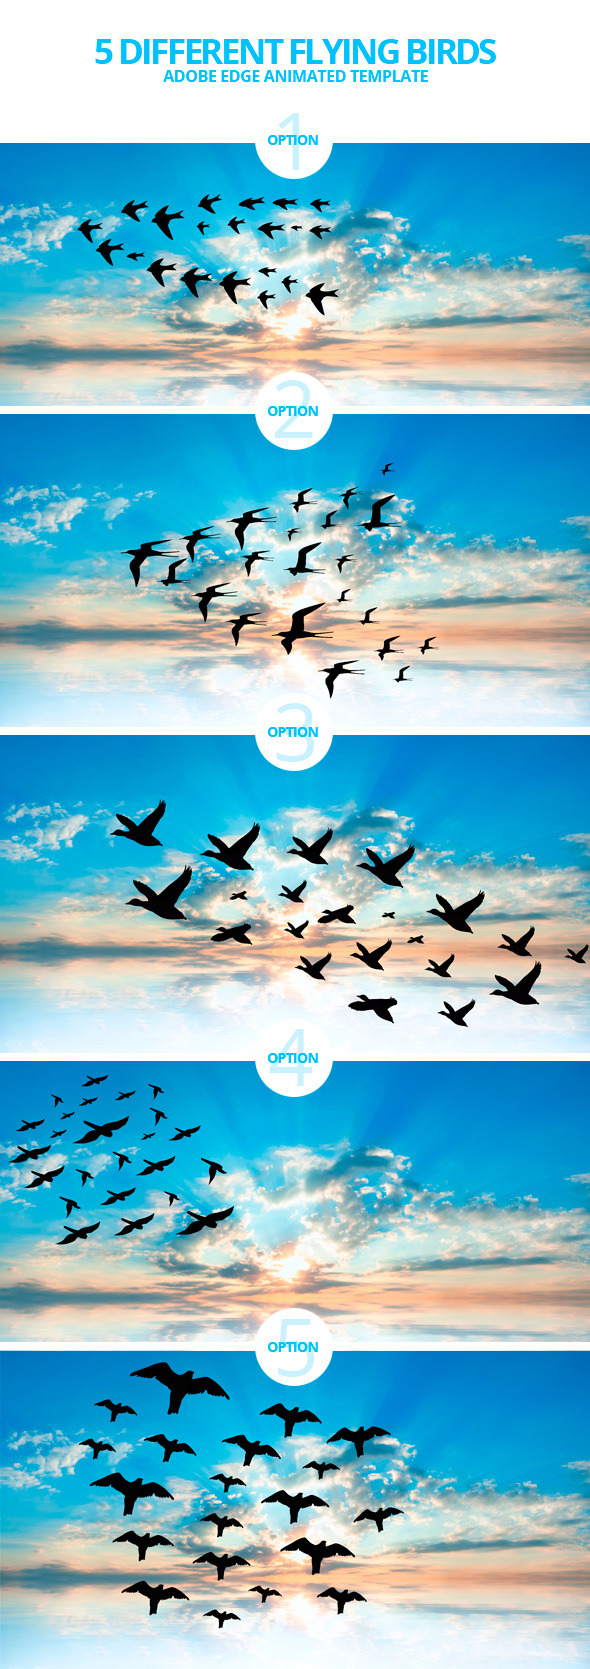 Edge Animate Flying Birds Template - CodeCanyon Item for Sale